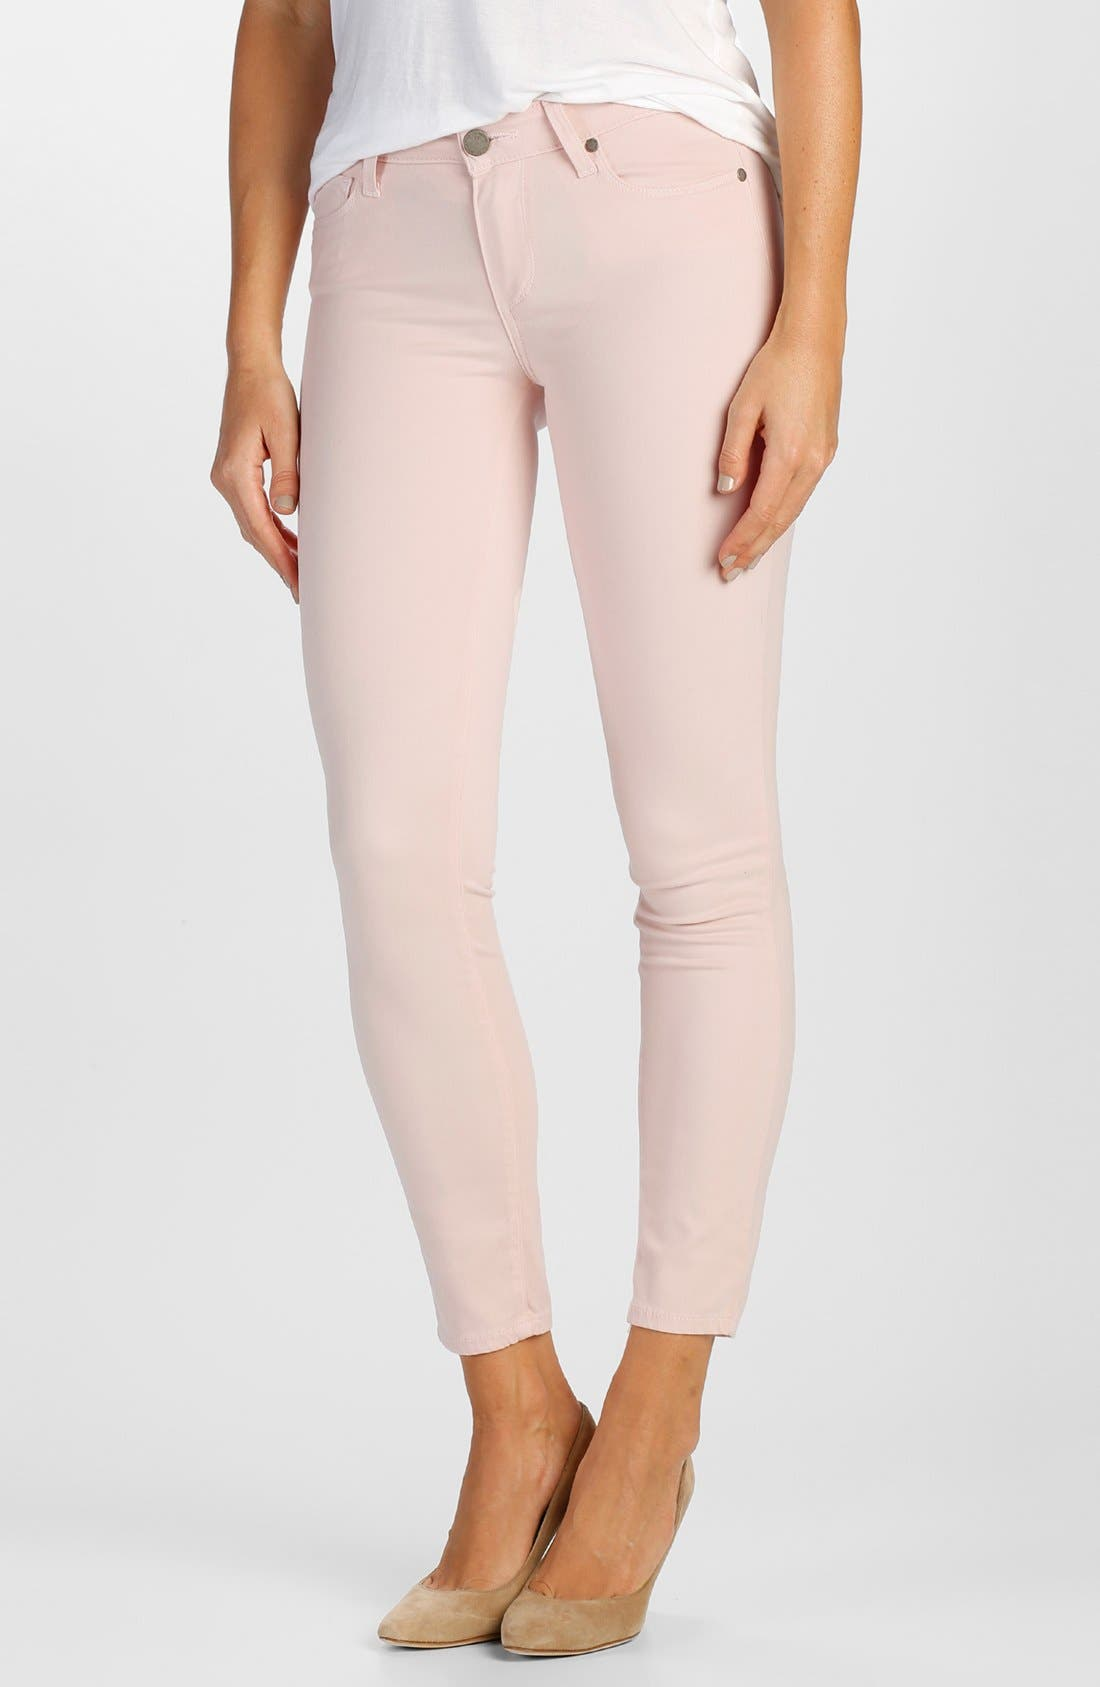 Main Image - Paige Denim 'Verdugo' Ankle Ultra Skinny Jeans (True Blush)